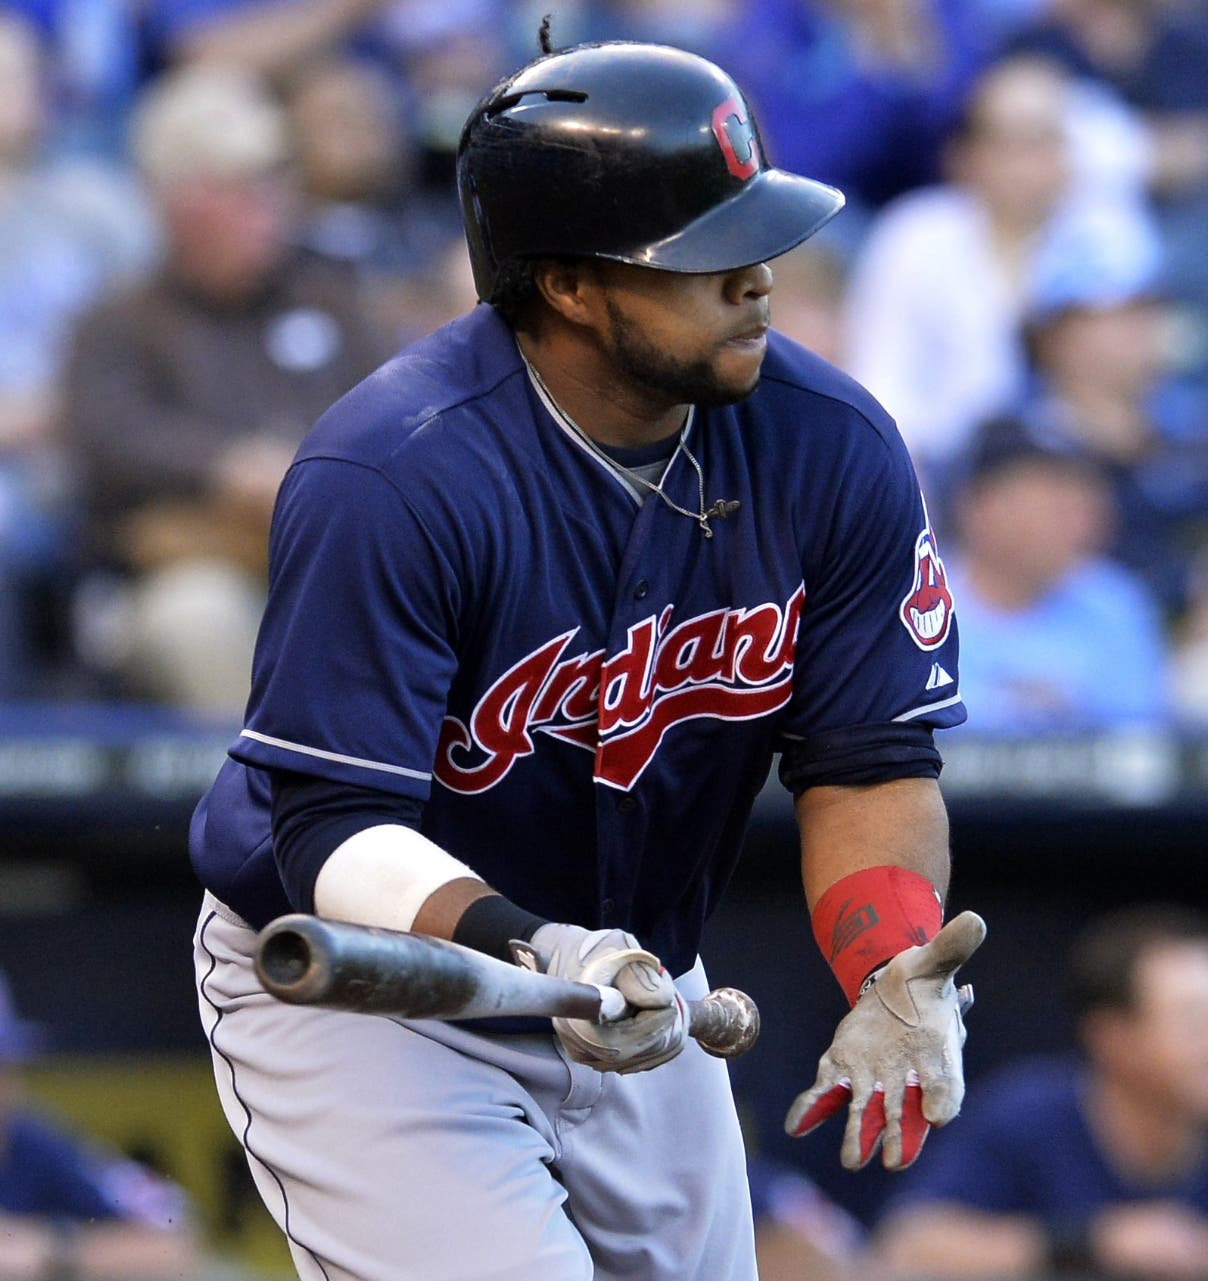 Cleveland Indians' Carlos Santana (41) sprints to first on an RBI single to give the Indians a 1-0 lead against the Kansas City Royals in the first inning of their second baseball game of a doubleheader, Sunday, April 28, 2013, in Kansas City, Mo. (AP Photo/Reed Hoffmann)